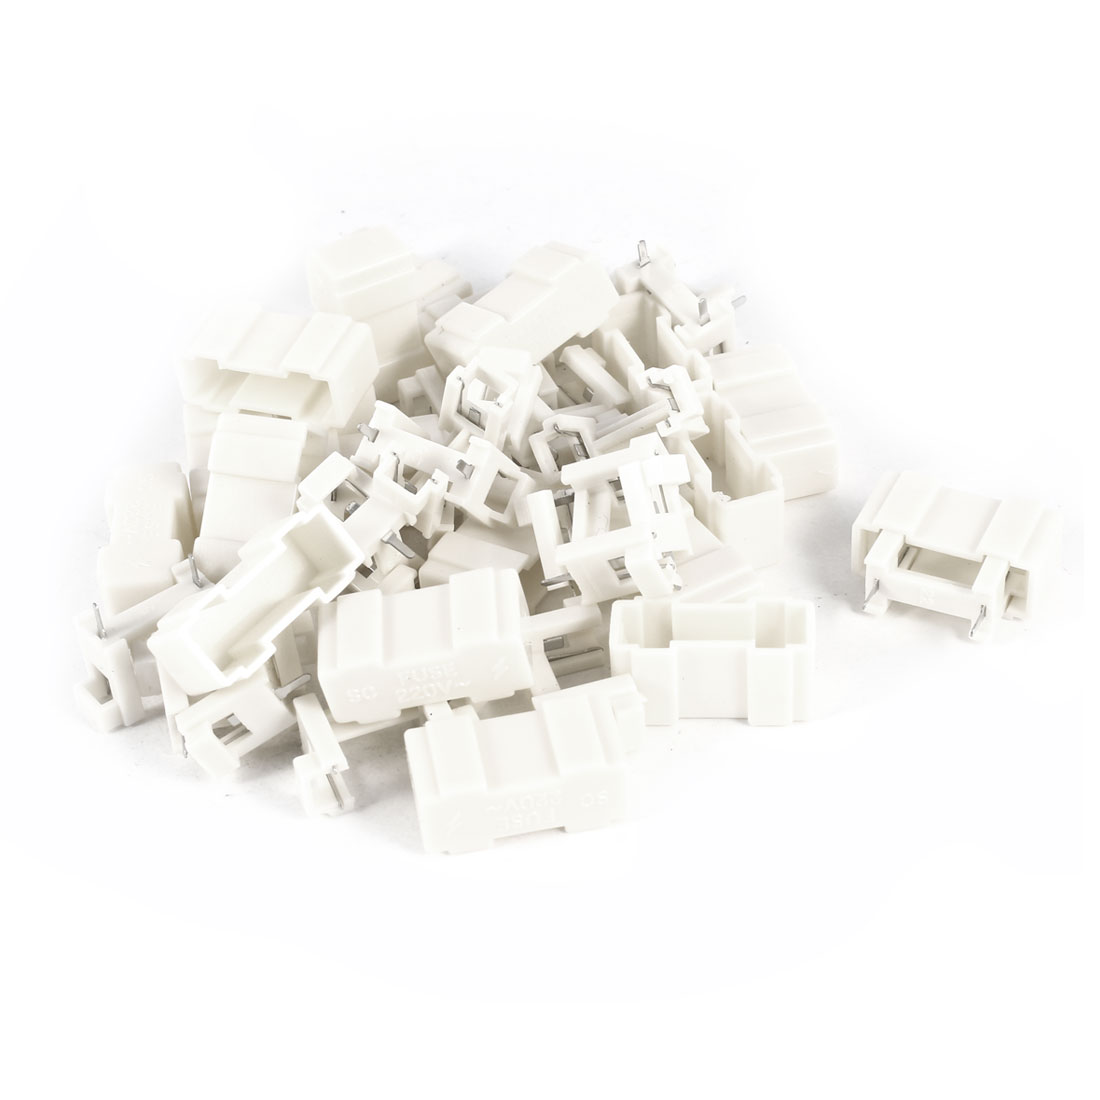 20 Pcs Off White Plastic 2Pins PCB Mount Fuse Holder 220V for 5x20mm Fuse